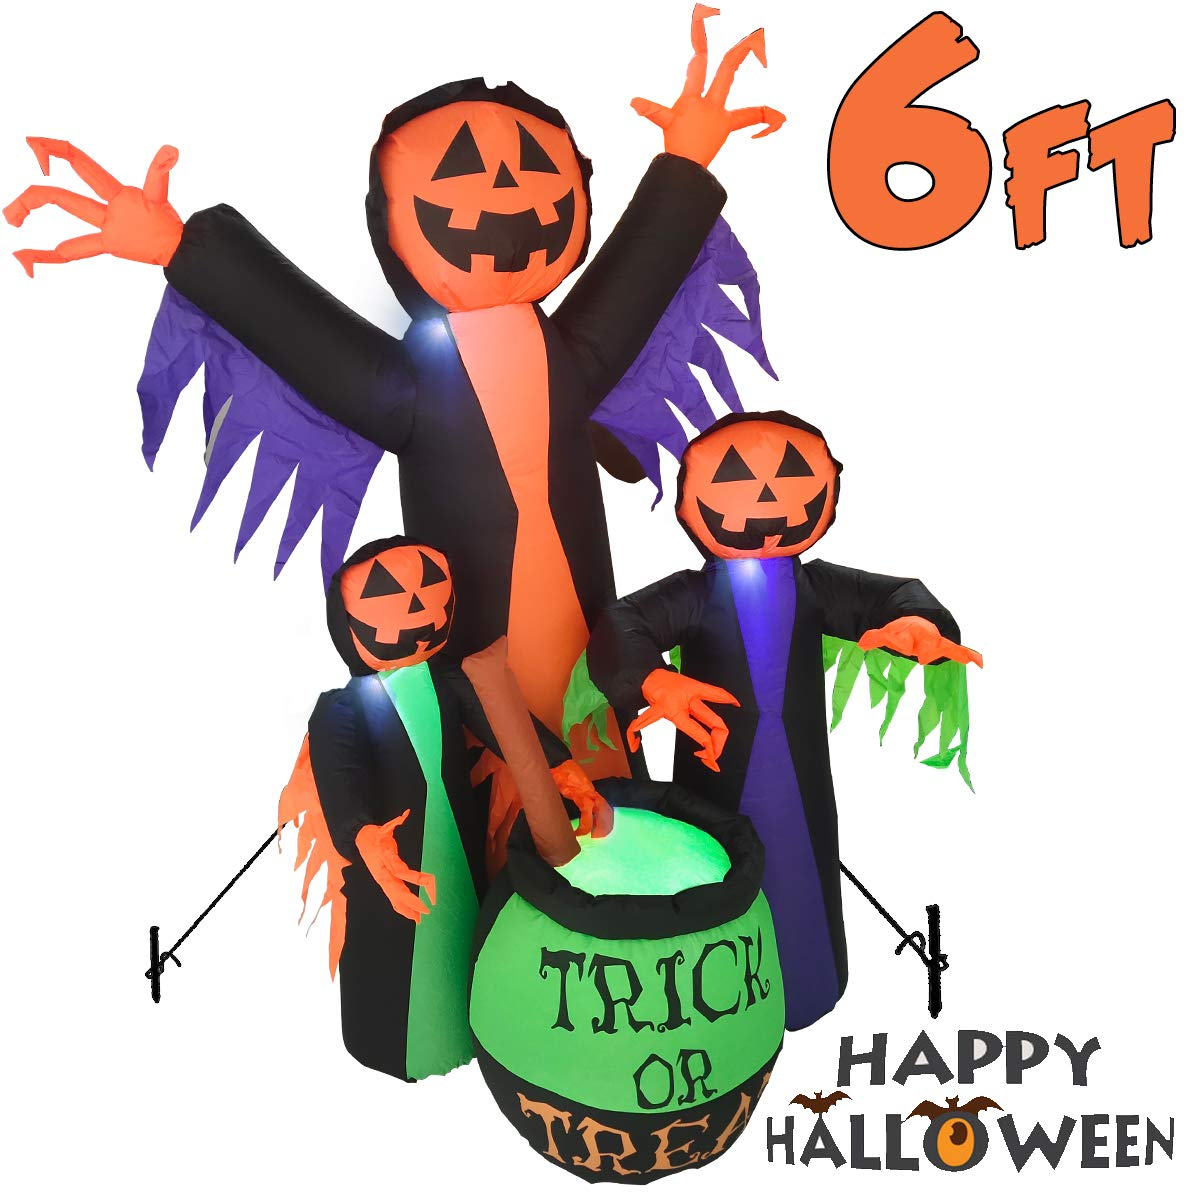 6FT Halloween Inflatable Model Decorations, Evil Witch Model LED Lights Suitable for Halloween Party Home Yard Garden Lawn Outdoor Indoor Holiday Inflatables Decor